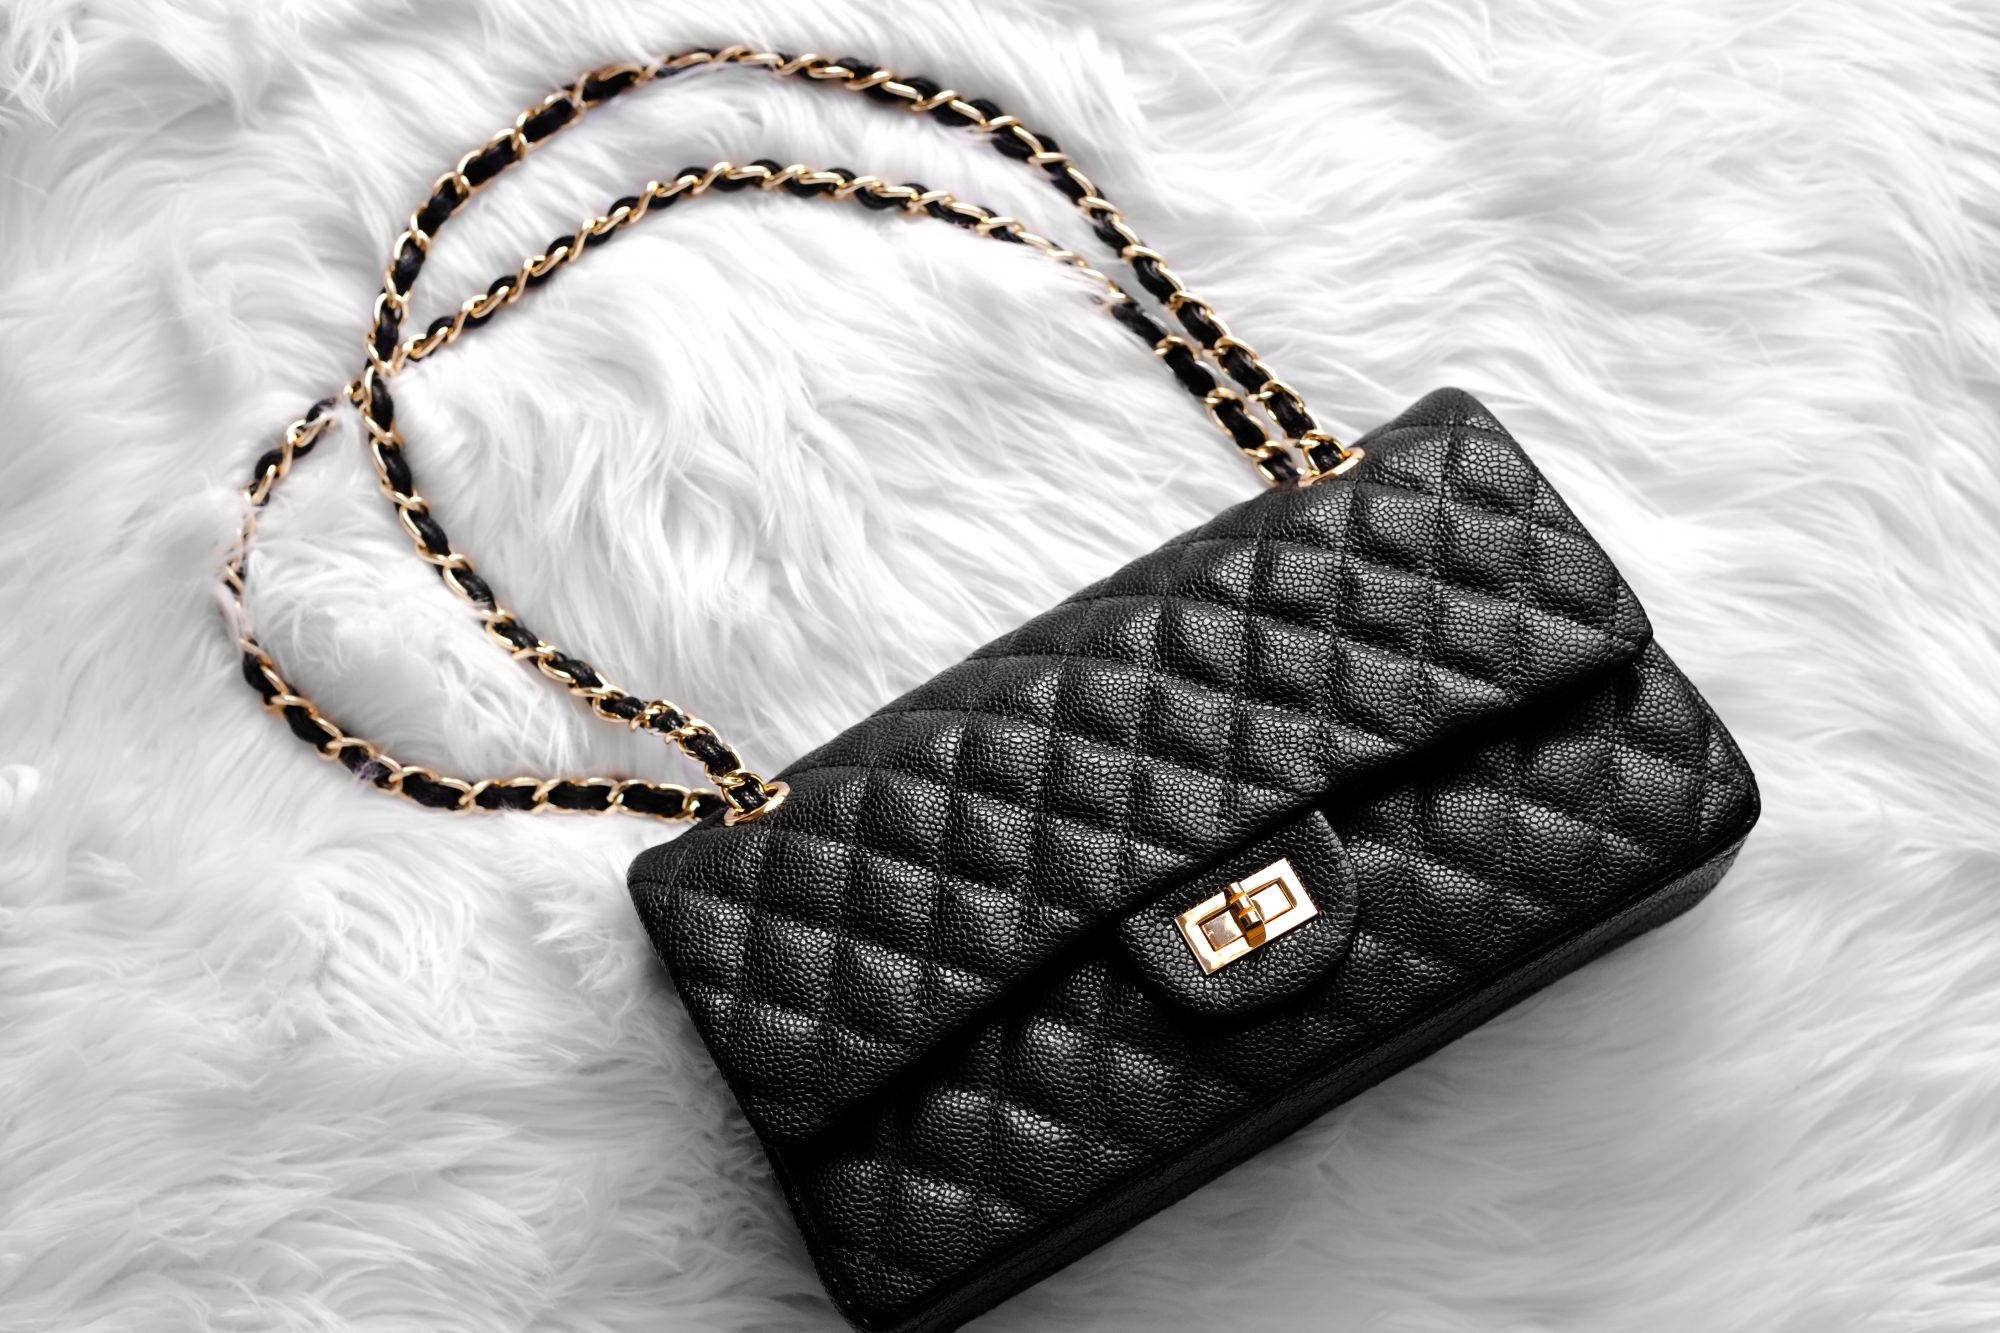 Looking For A Chanel Handbag Without The Hefty Price Tag This Genuine Leather One From